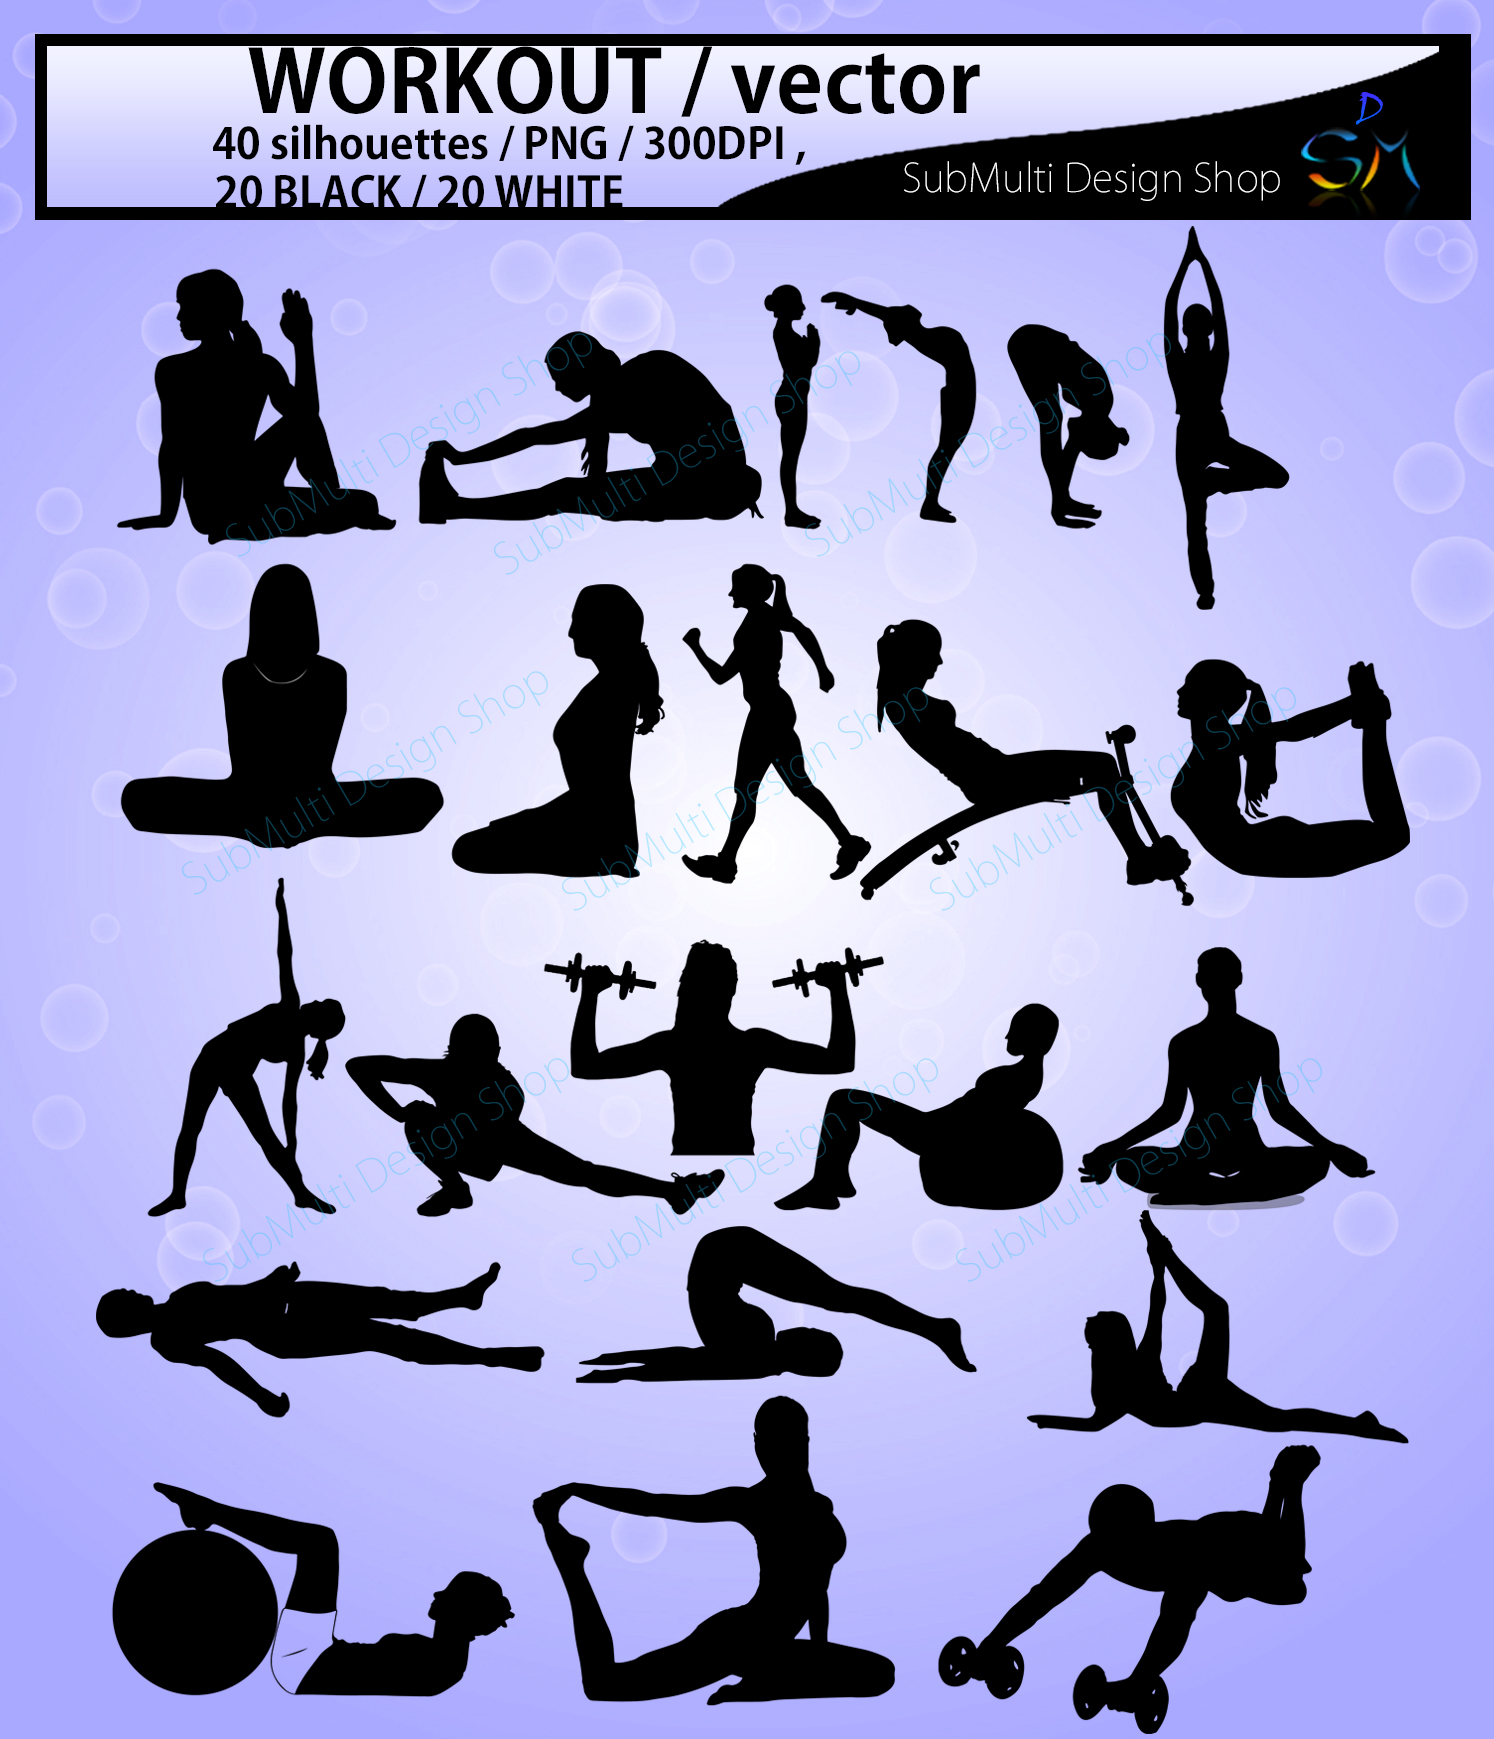 workout vector SVG / workout silhouette / workout clipart / vector workout file / exercise / yoga shapes / exercise silhouette/ EPS / PNG / Dxf example image 3